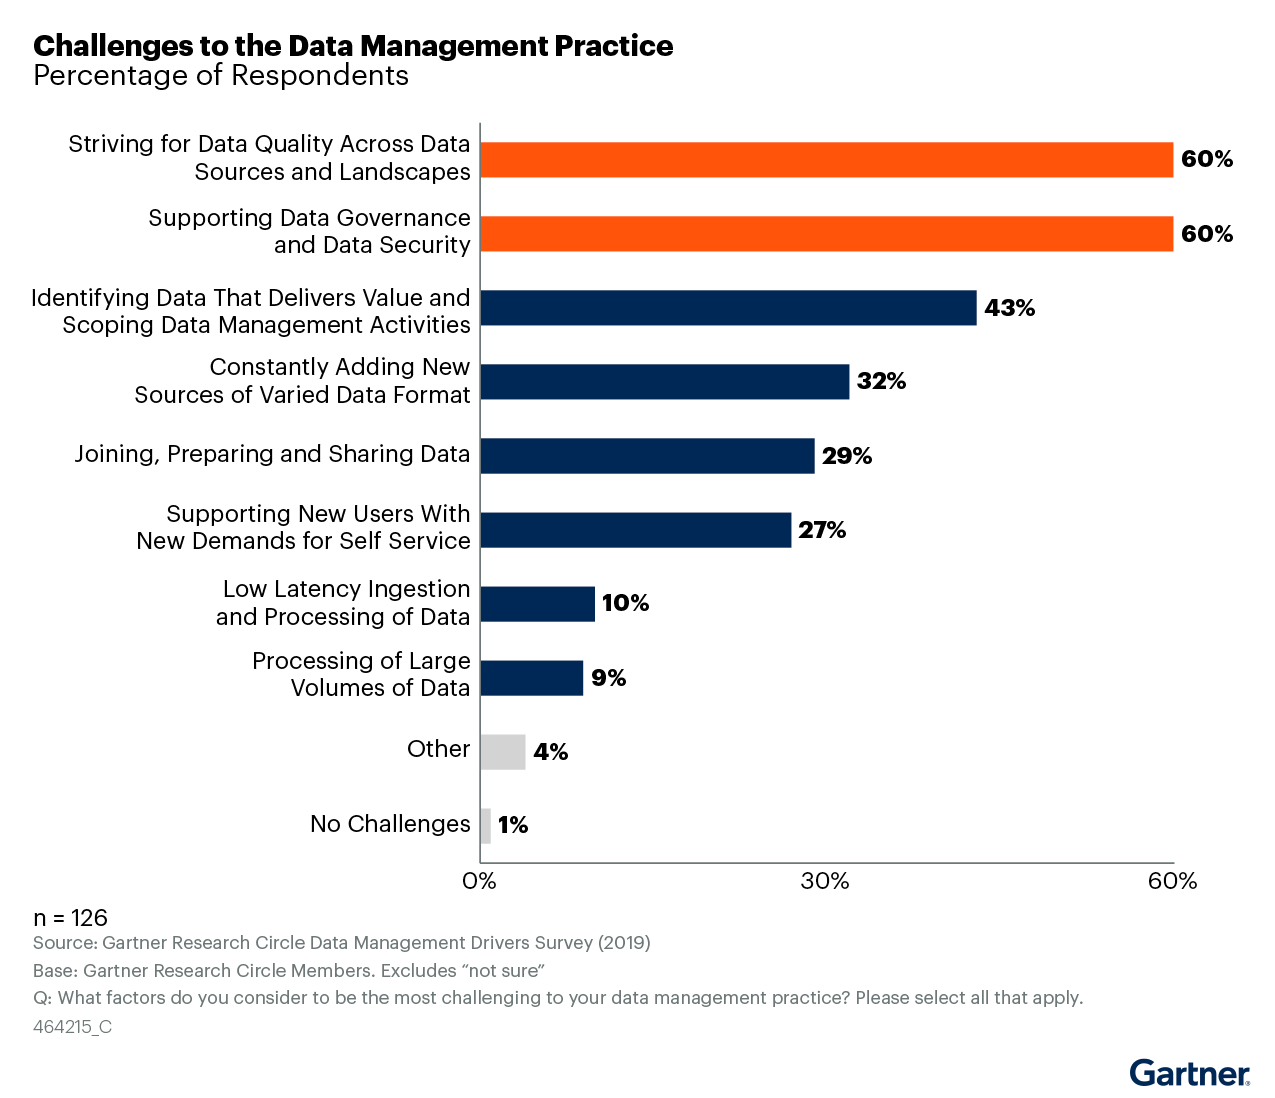 Figure 1: Key Challenges to Data Management Practice